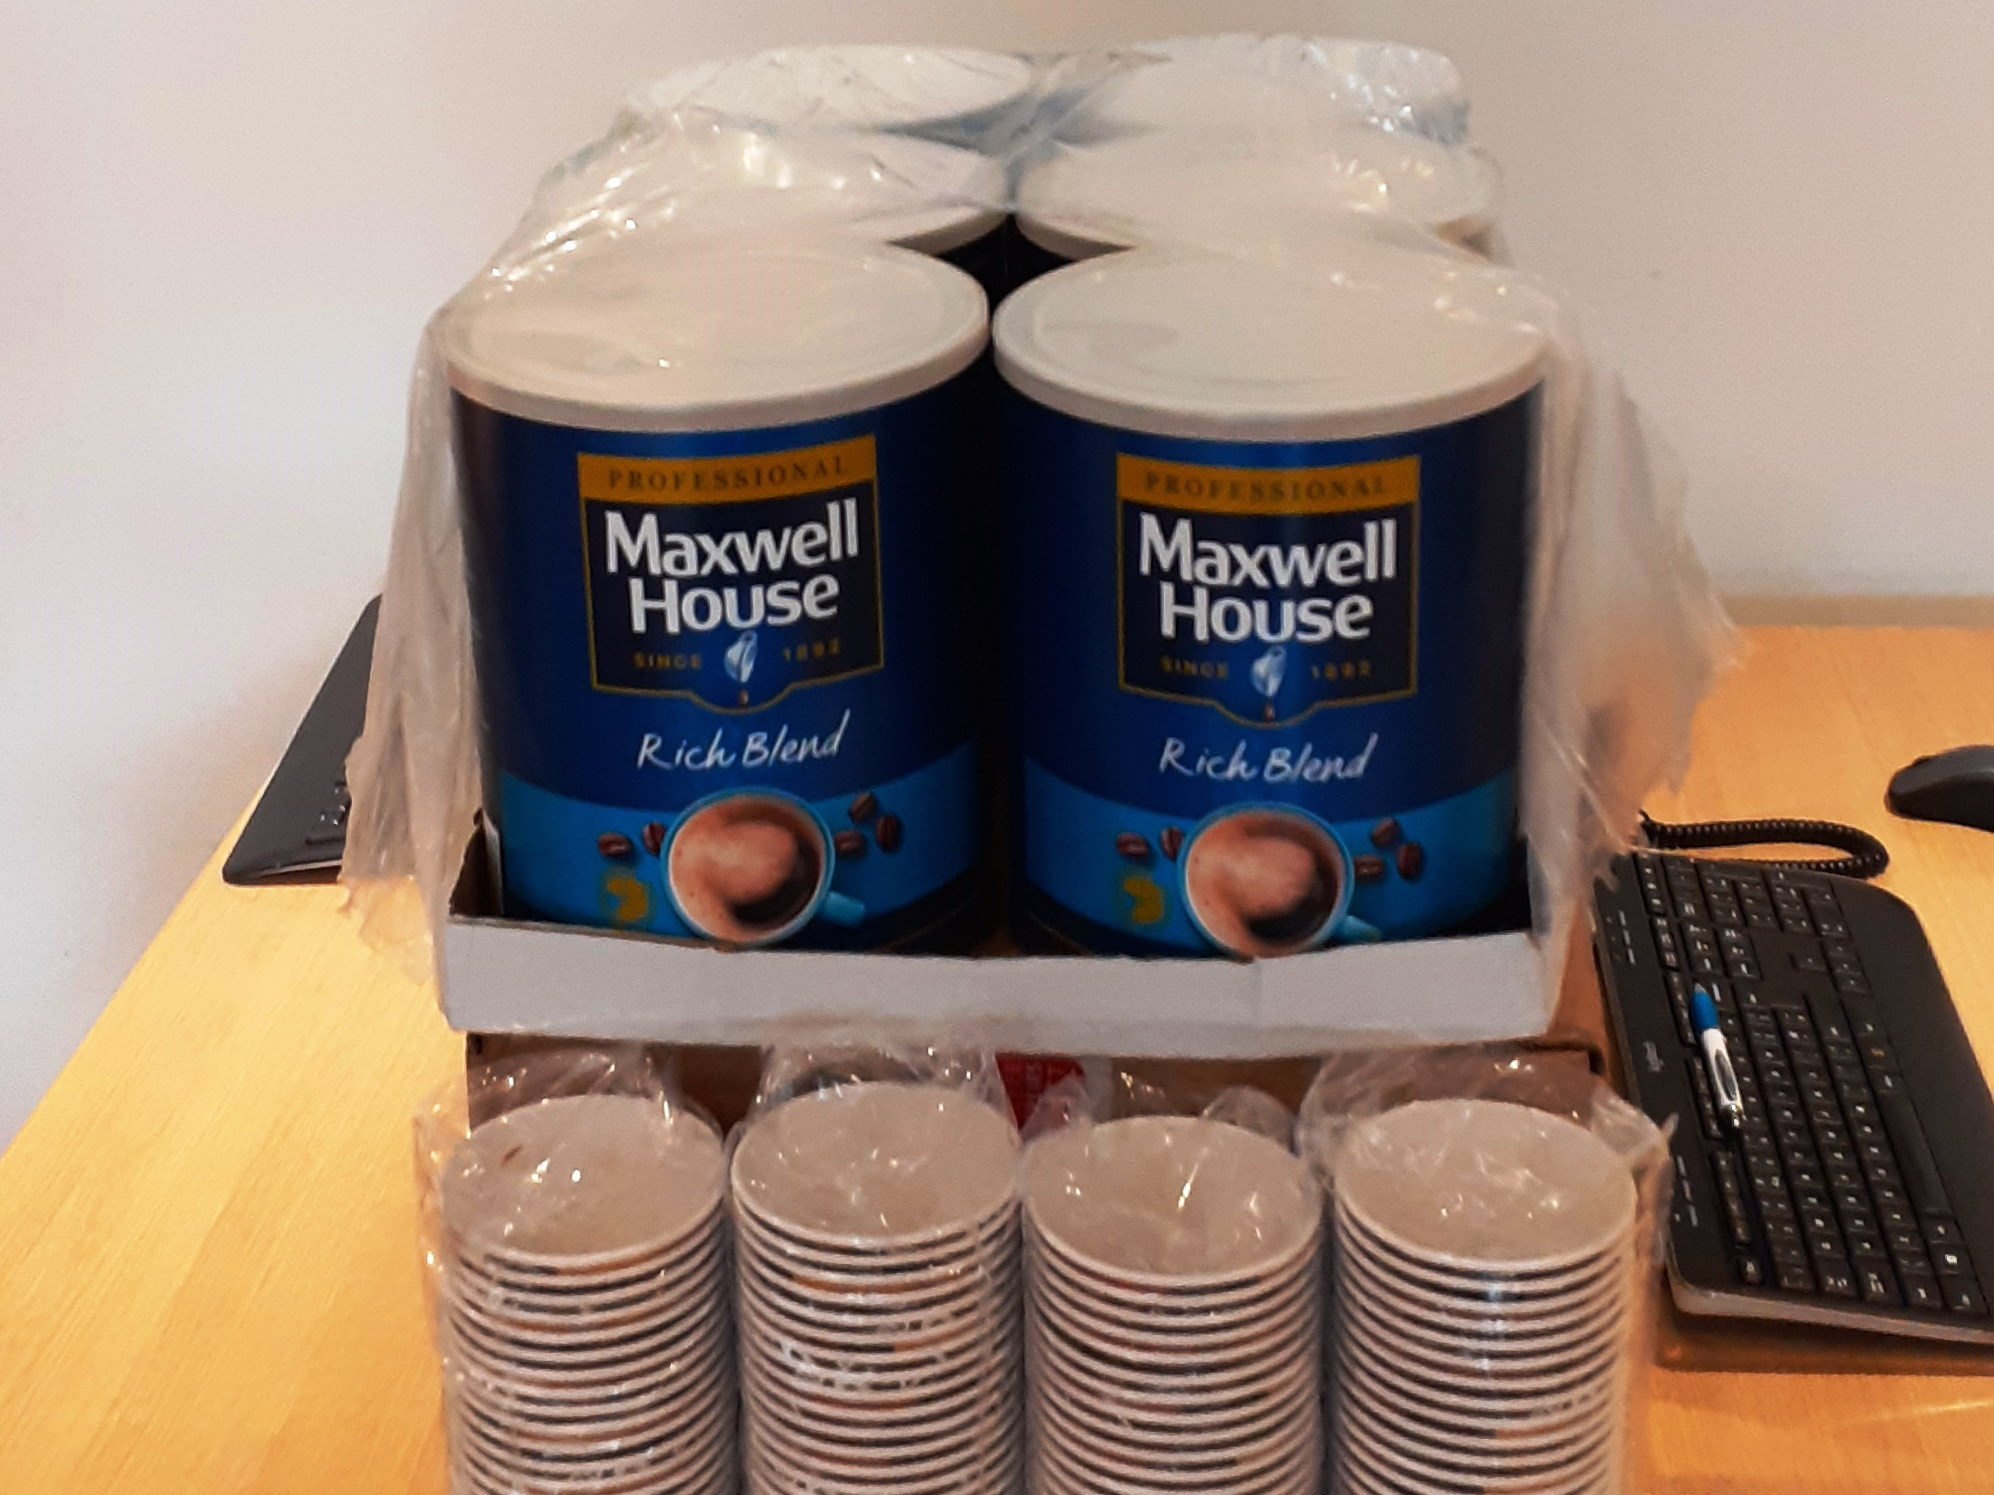 Martin & Co Poole donate coffee to local soup kitchen